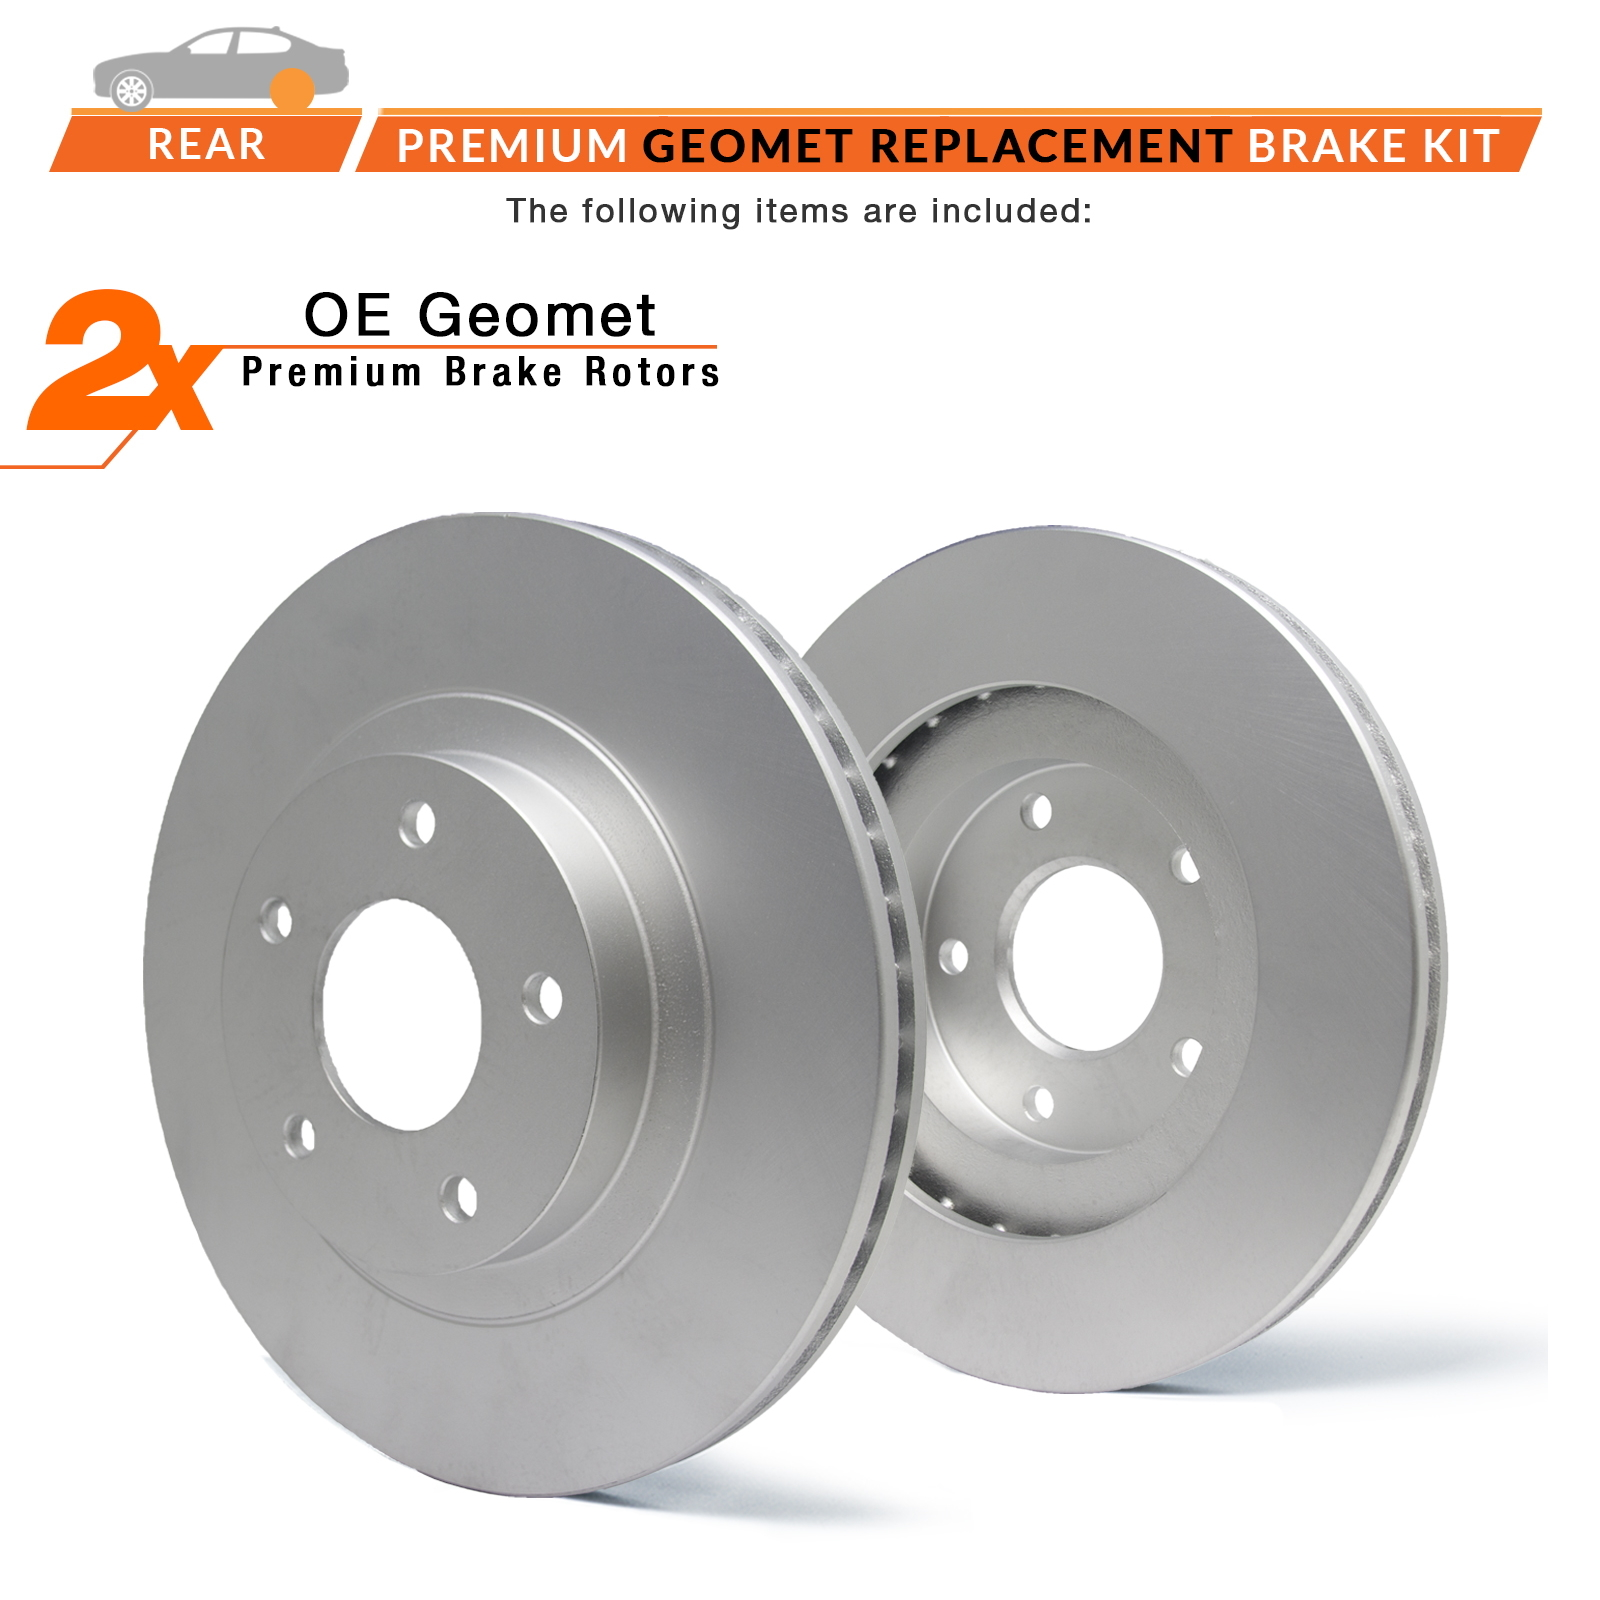 Rear-Rotors-Geomet-OE-Brake thumbnail 2